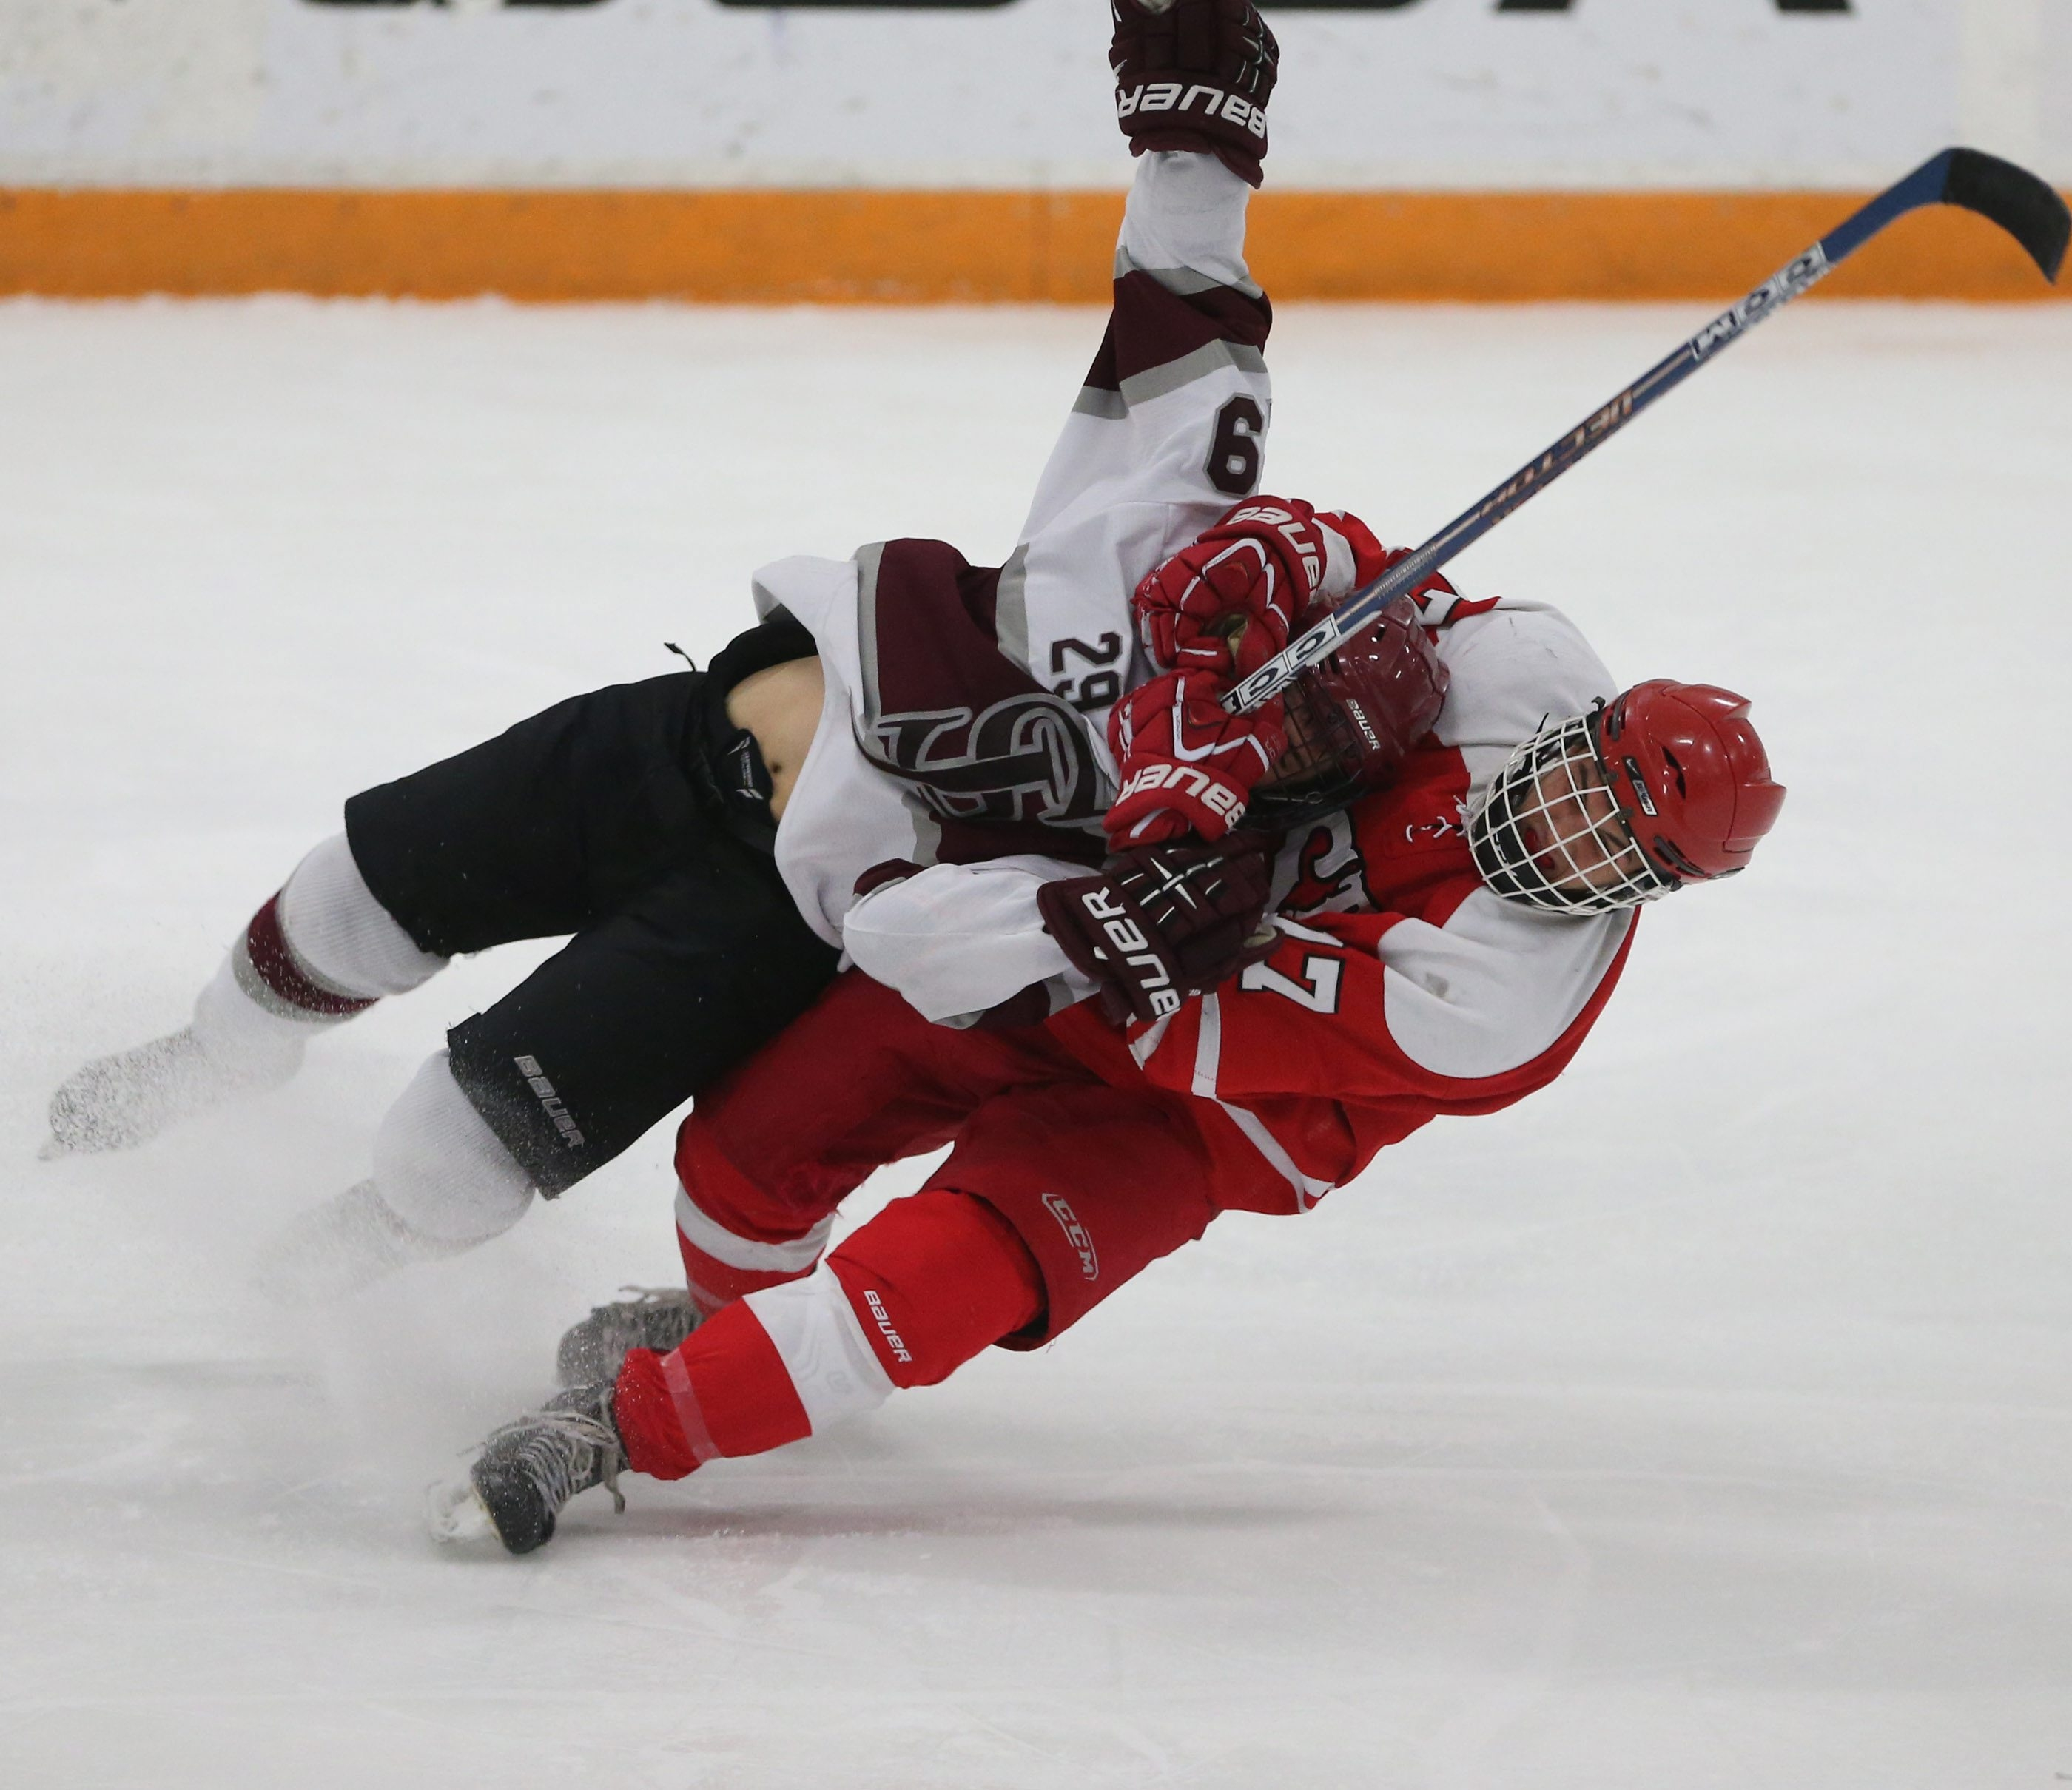 St. Joe's Nash Braun gets taken down in a head lock by St. Francis' Christian Vidal in the third period in the Niagara Cup semifinal game at Dwyer Arena in Niagara University,N.Y. on Monday, Feb. 23, 2015.  (James P. McCoy/ Buffalo News)